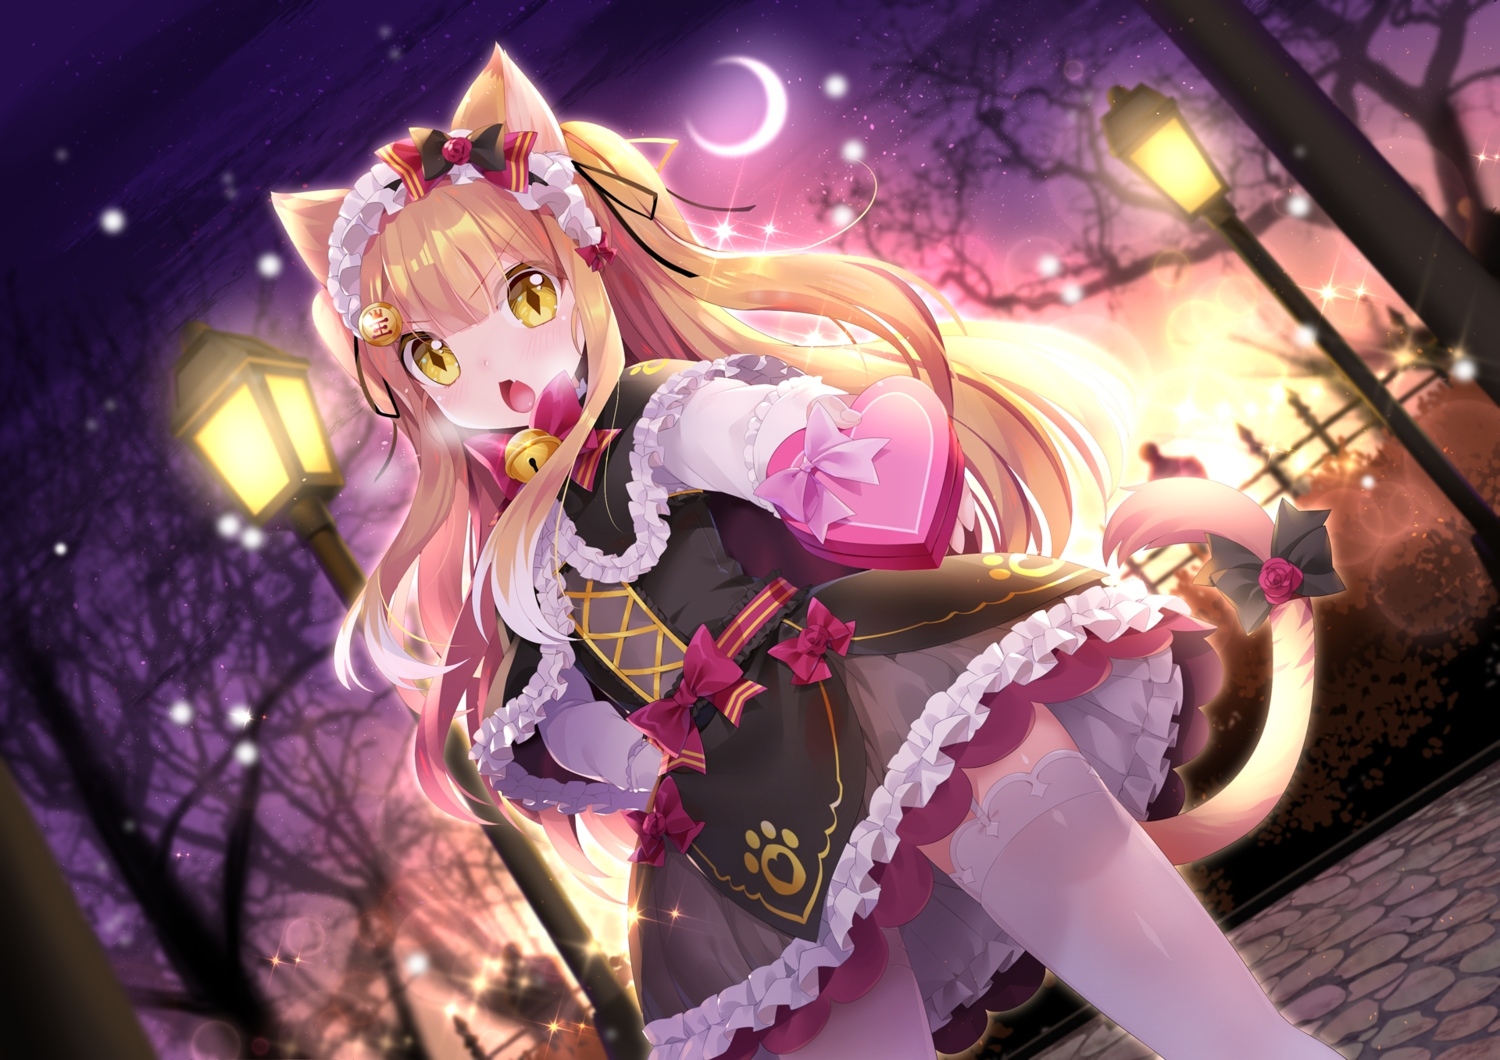 animal_ears bell blonde_hair blush bow clouds fang garter_belt goth-loli headdress loli lolita_fashion long_hair mimikko_ui moon mvv night sky stars stockings tail thighhighs tree twintails valentine winter yellow_eyes